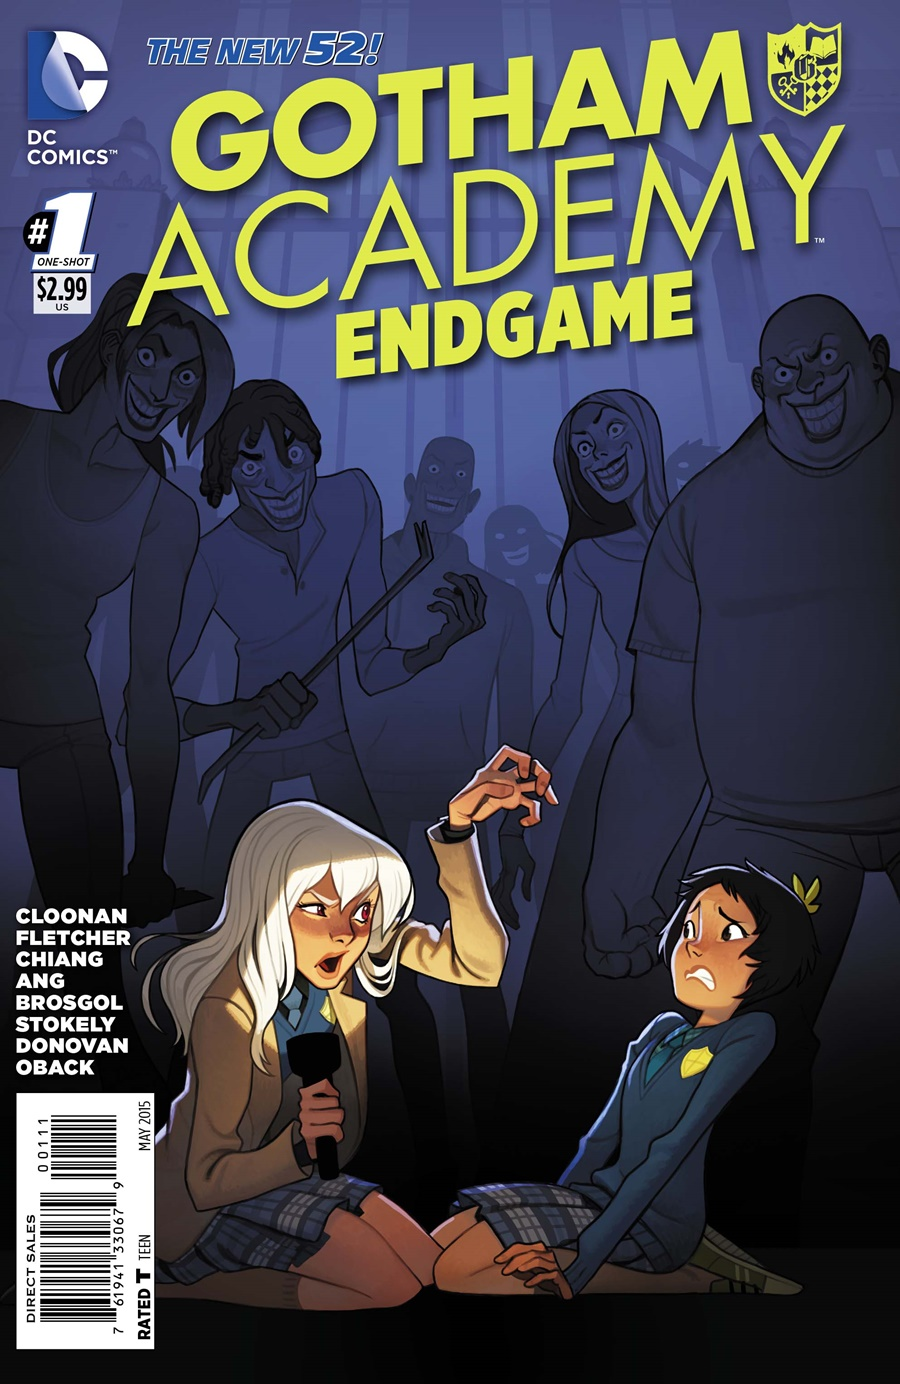 Gotham Academy Endgame New 52 DC Comics French